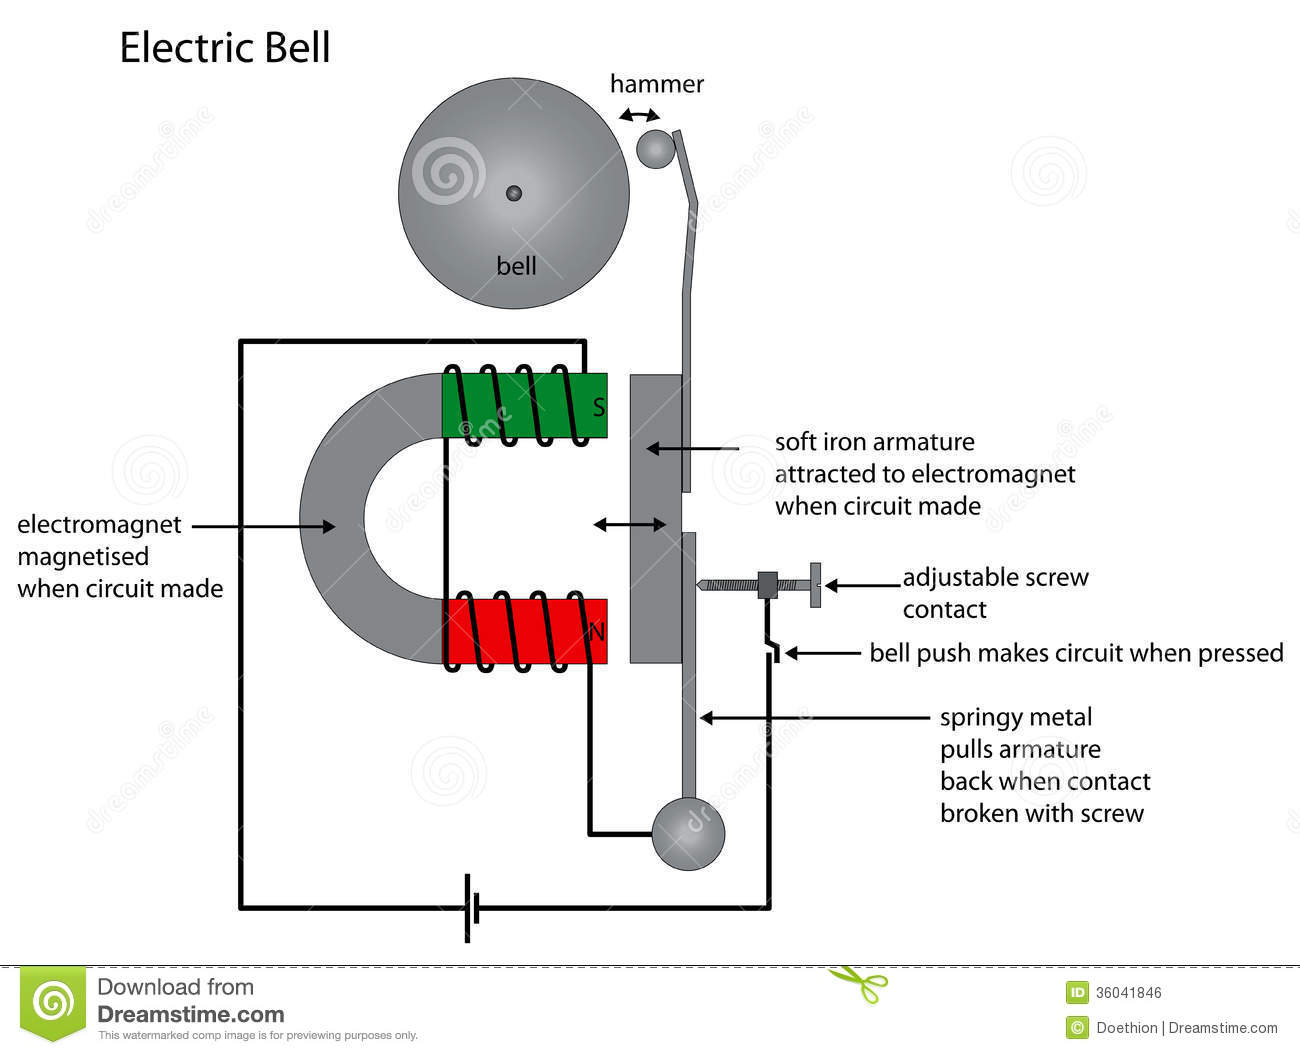 Royalty Free Stock Image Electric Bell Diagram Showing Electromag  Use Illustration Image36041846 on electronic bell circuit